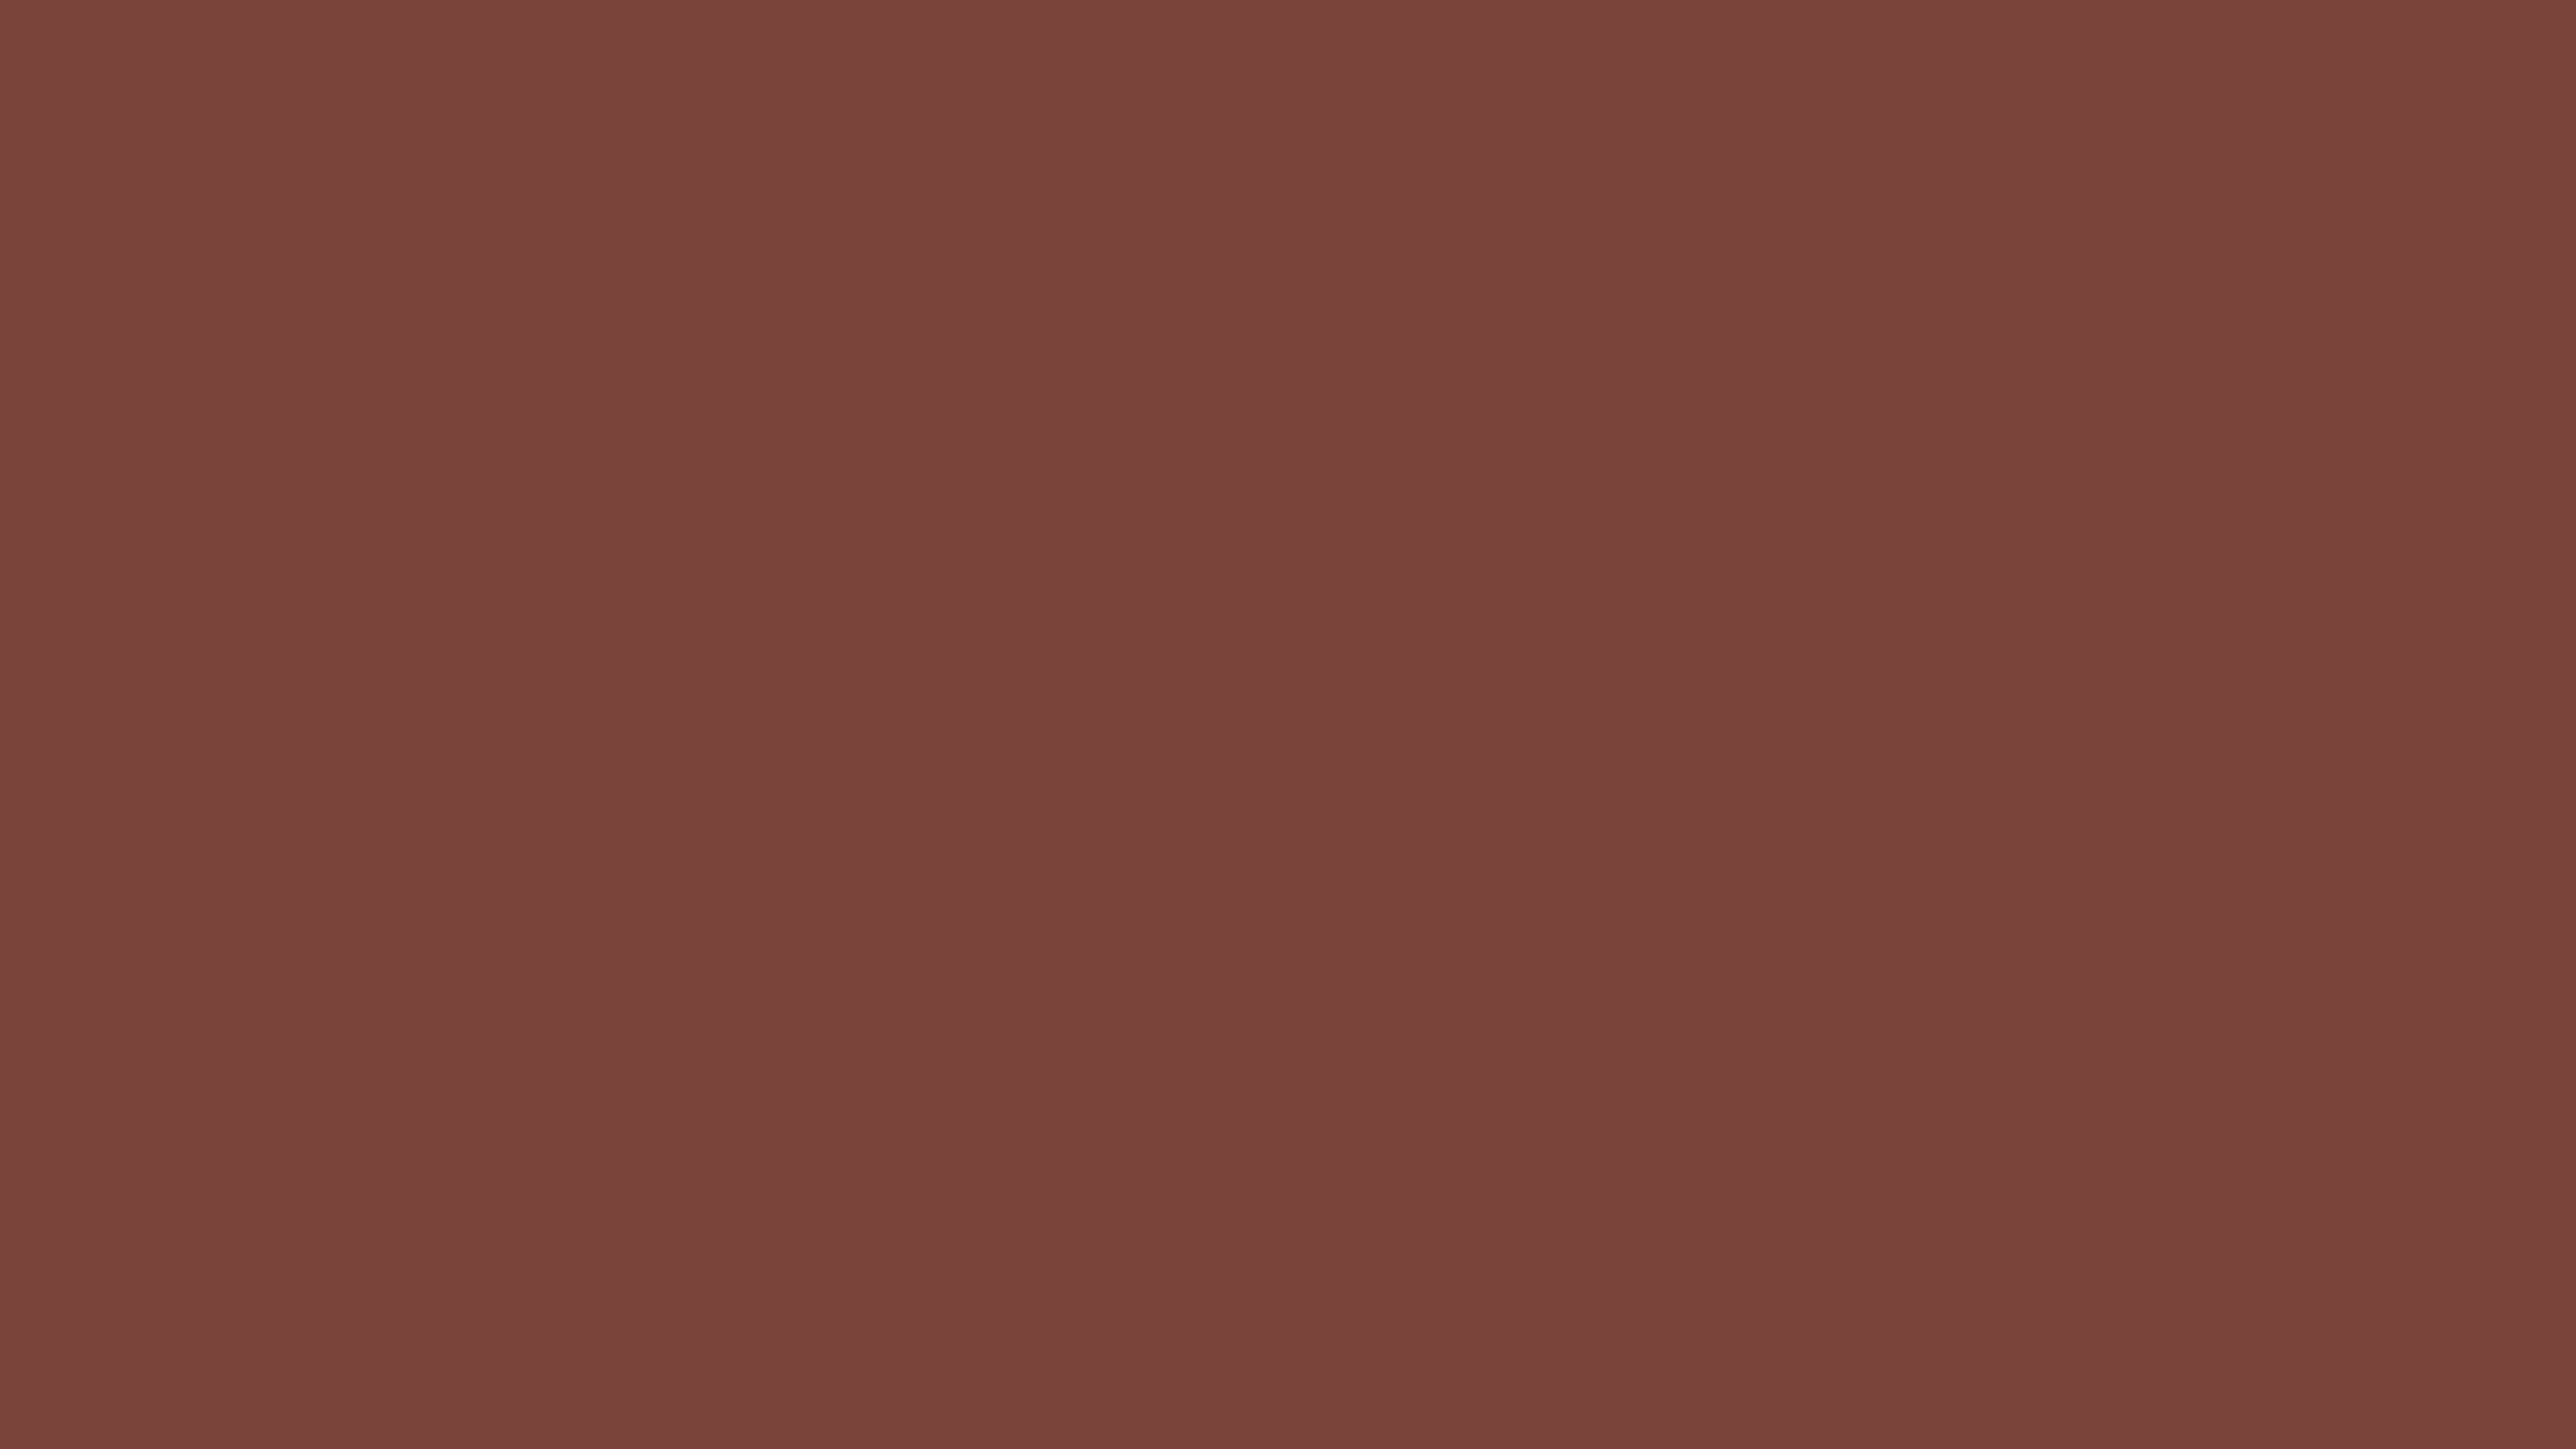 4096x2304 Medium Tuscan Red Solid Color Background